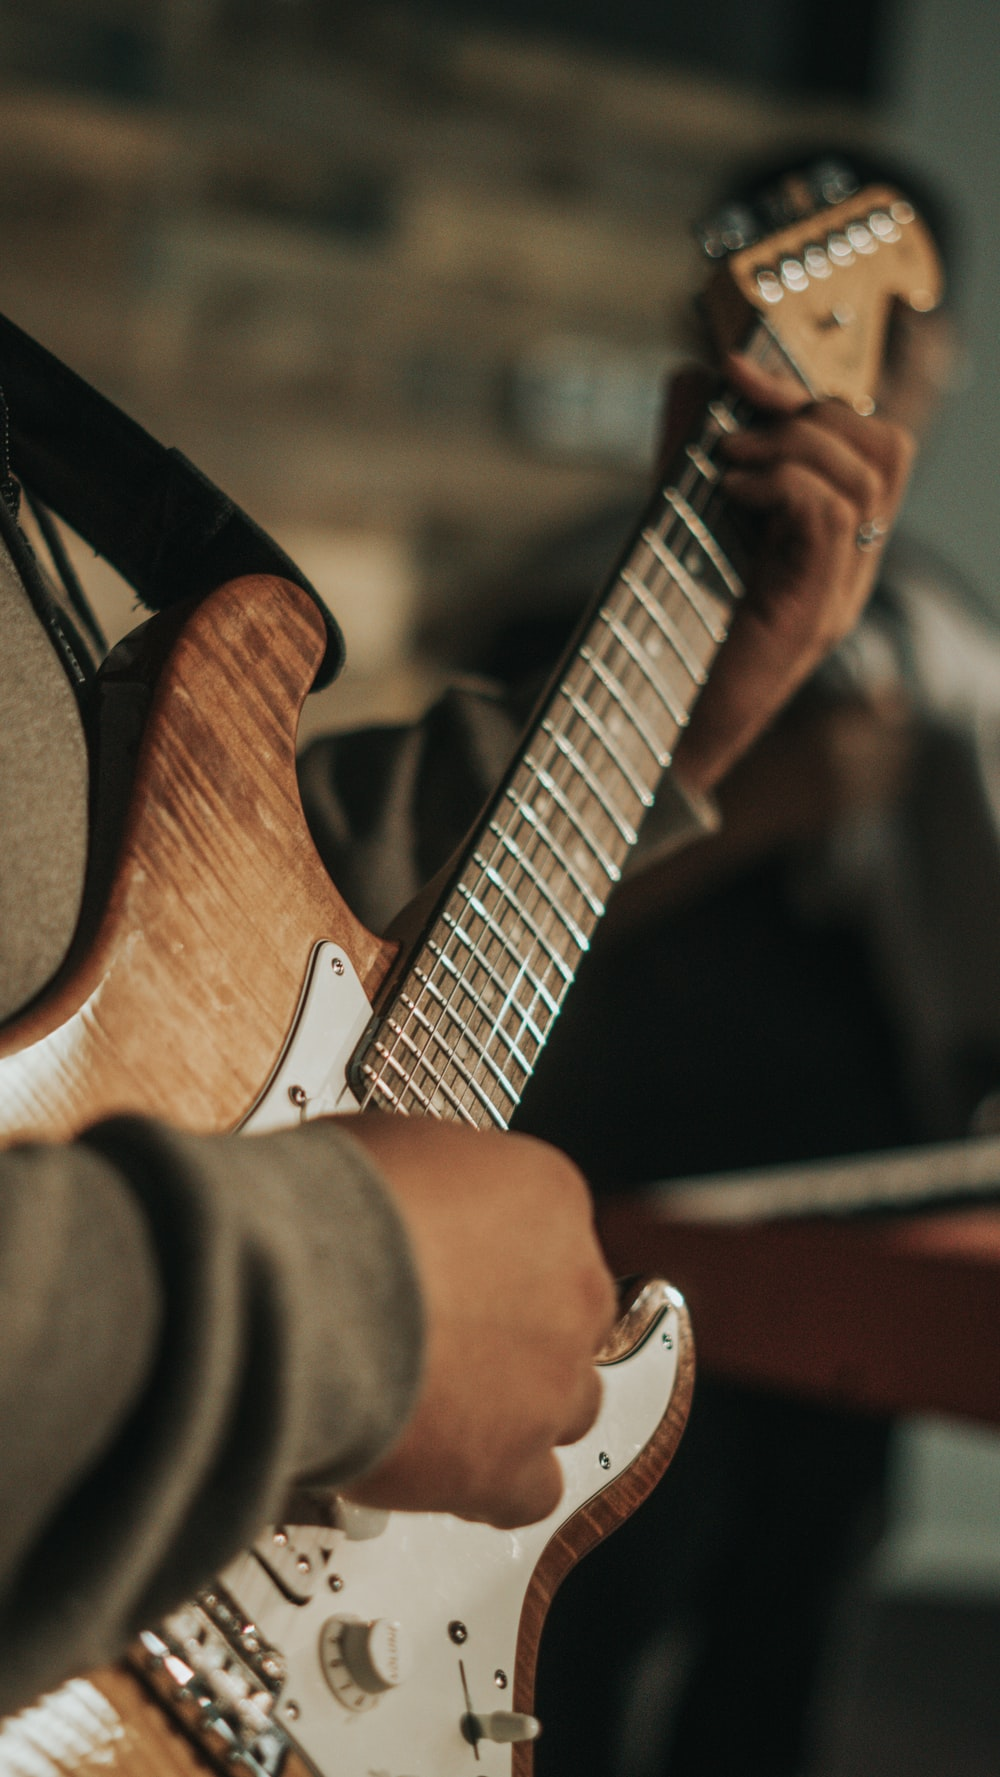 person playing brown and white electric guitar